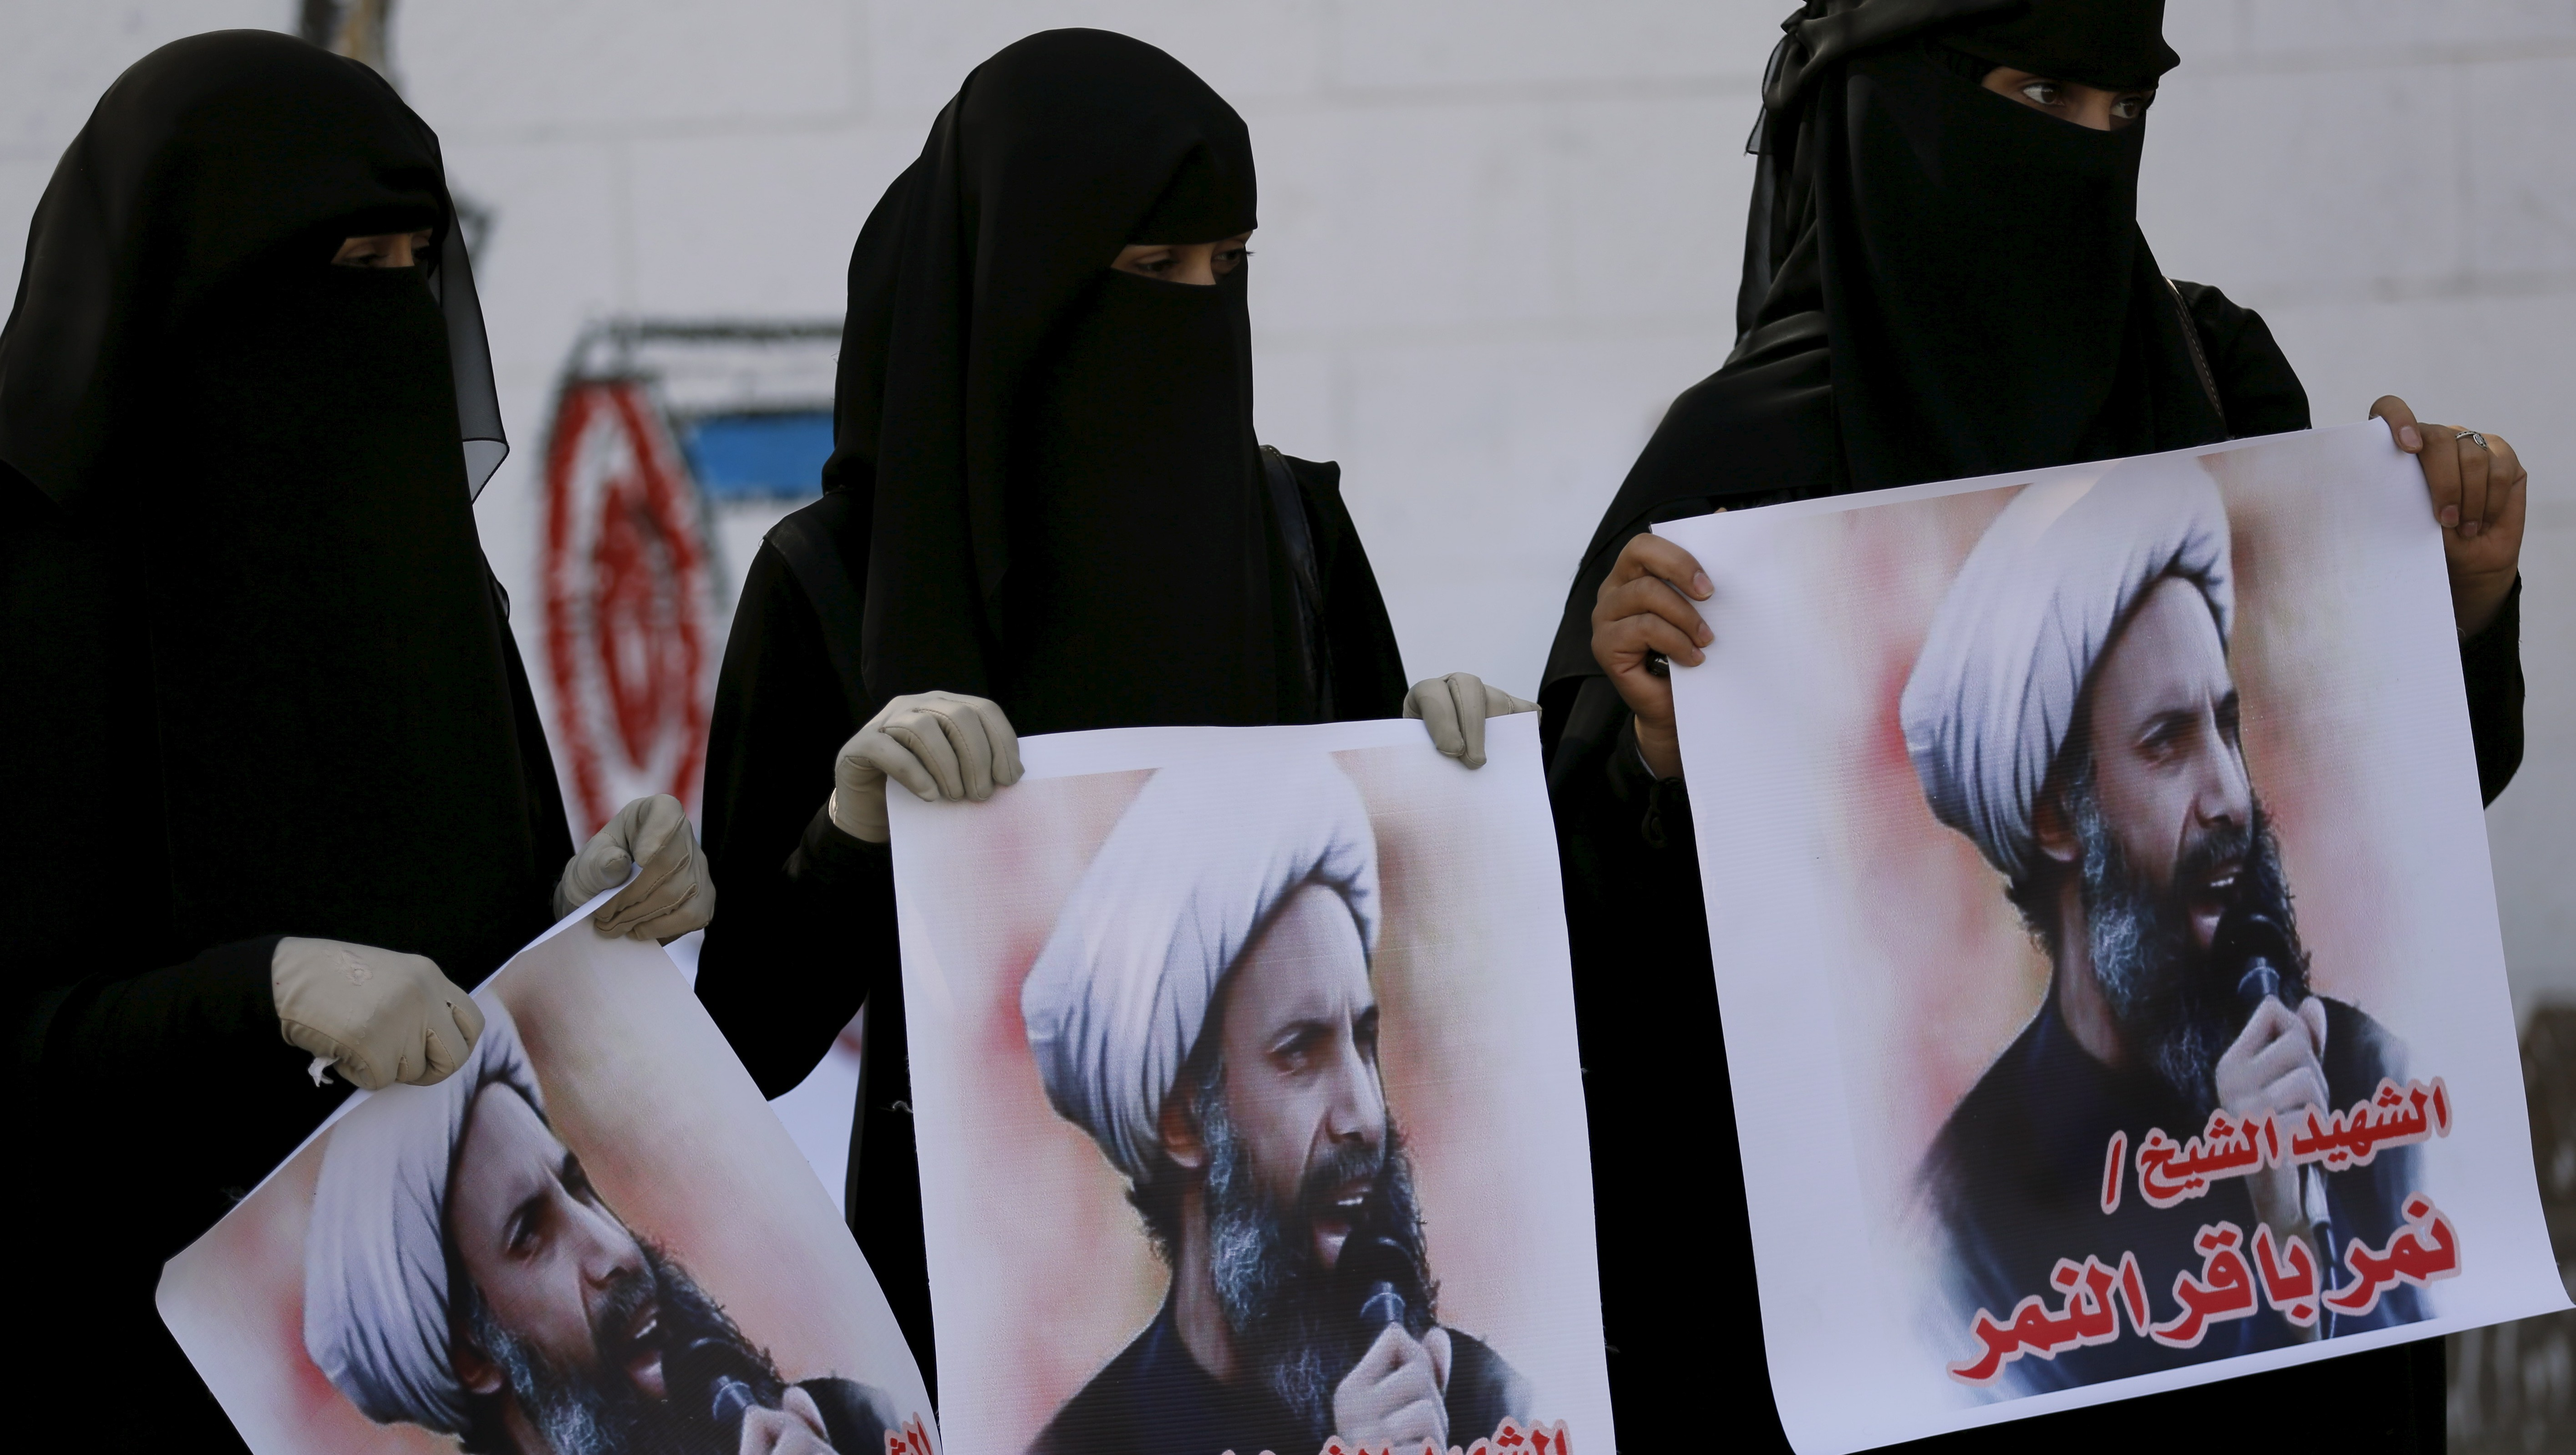 Supporters of the Houthi movement protest against the execution of Shi'ite Muslim cleric Nimr al-Nimr in Saudi Arabia, in Sanaa, Yemen.